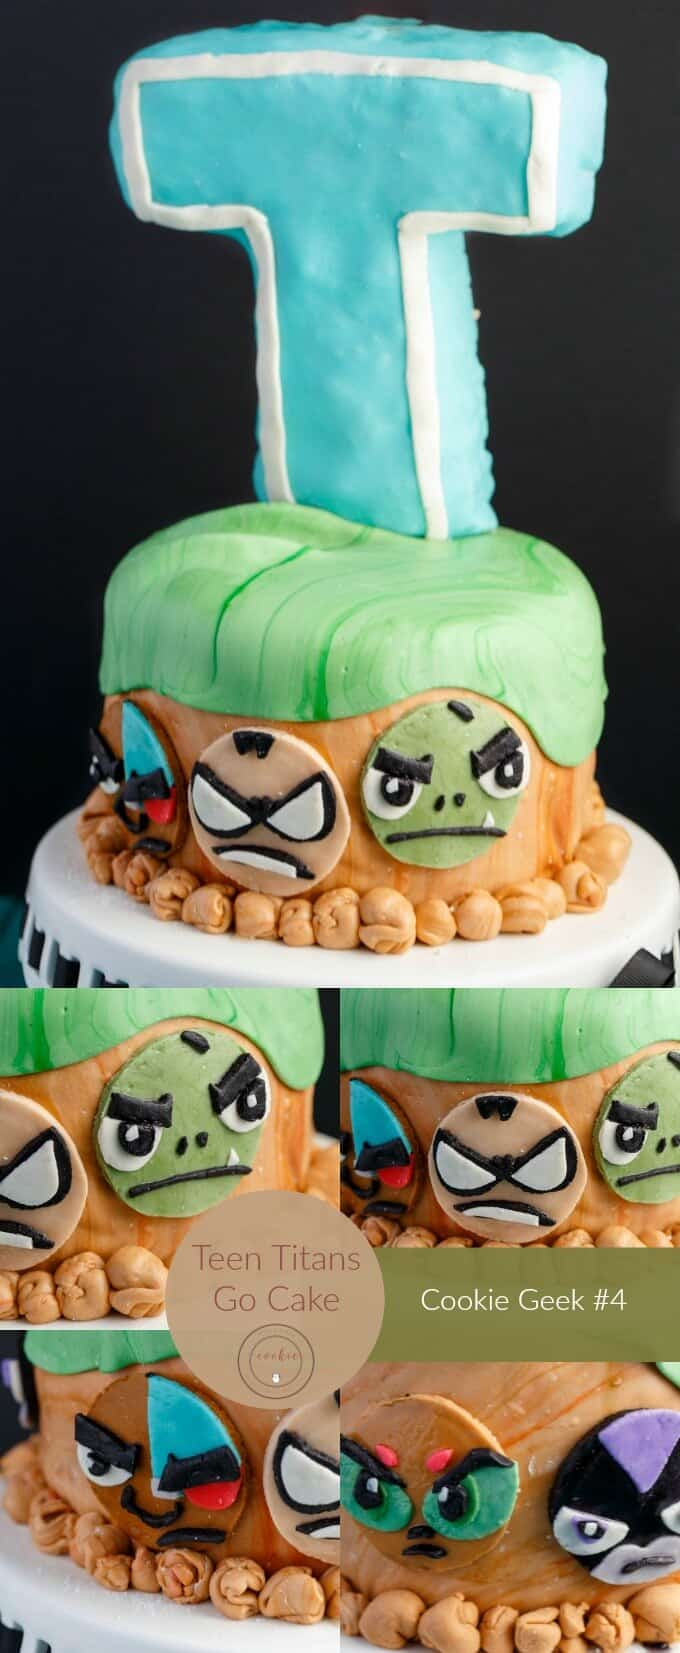 Teen Titans Go Cake Cookie Geek 4 The Cookie Writer